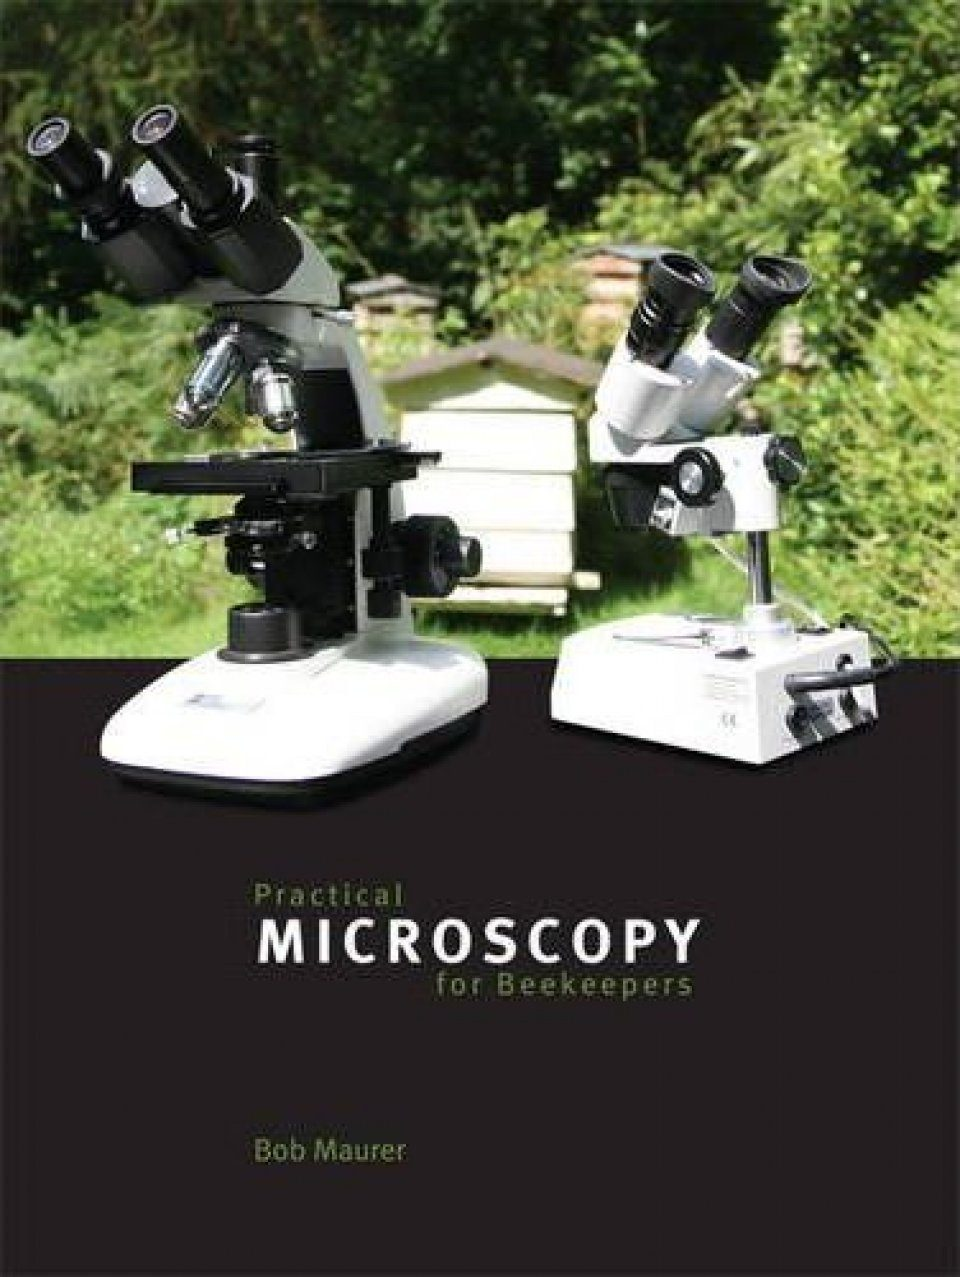 Practical Microscopy for Beekeepers: Bob Maurer | NHBS Book Shop